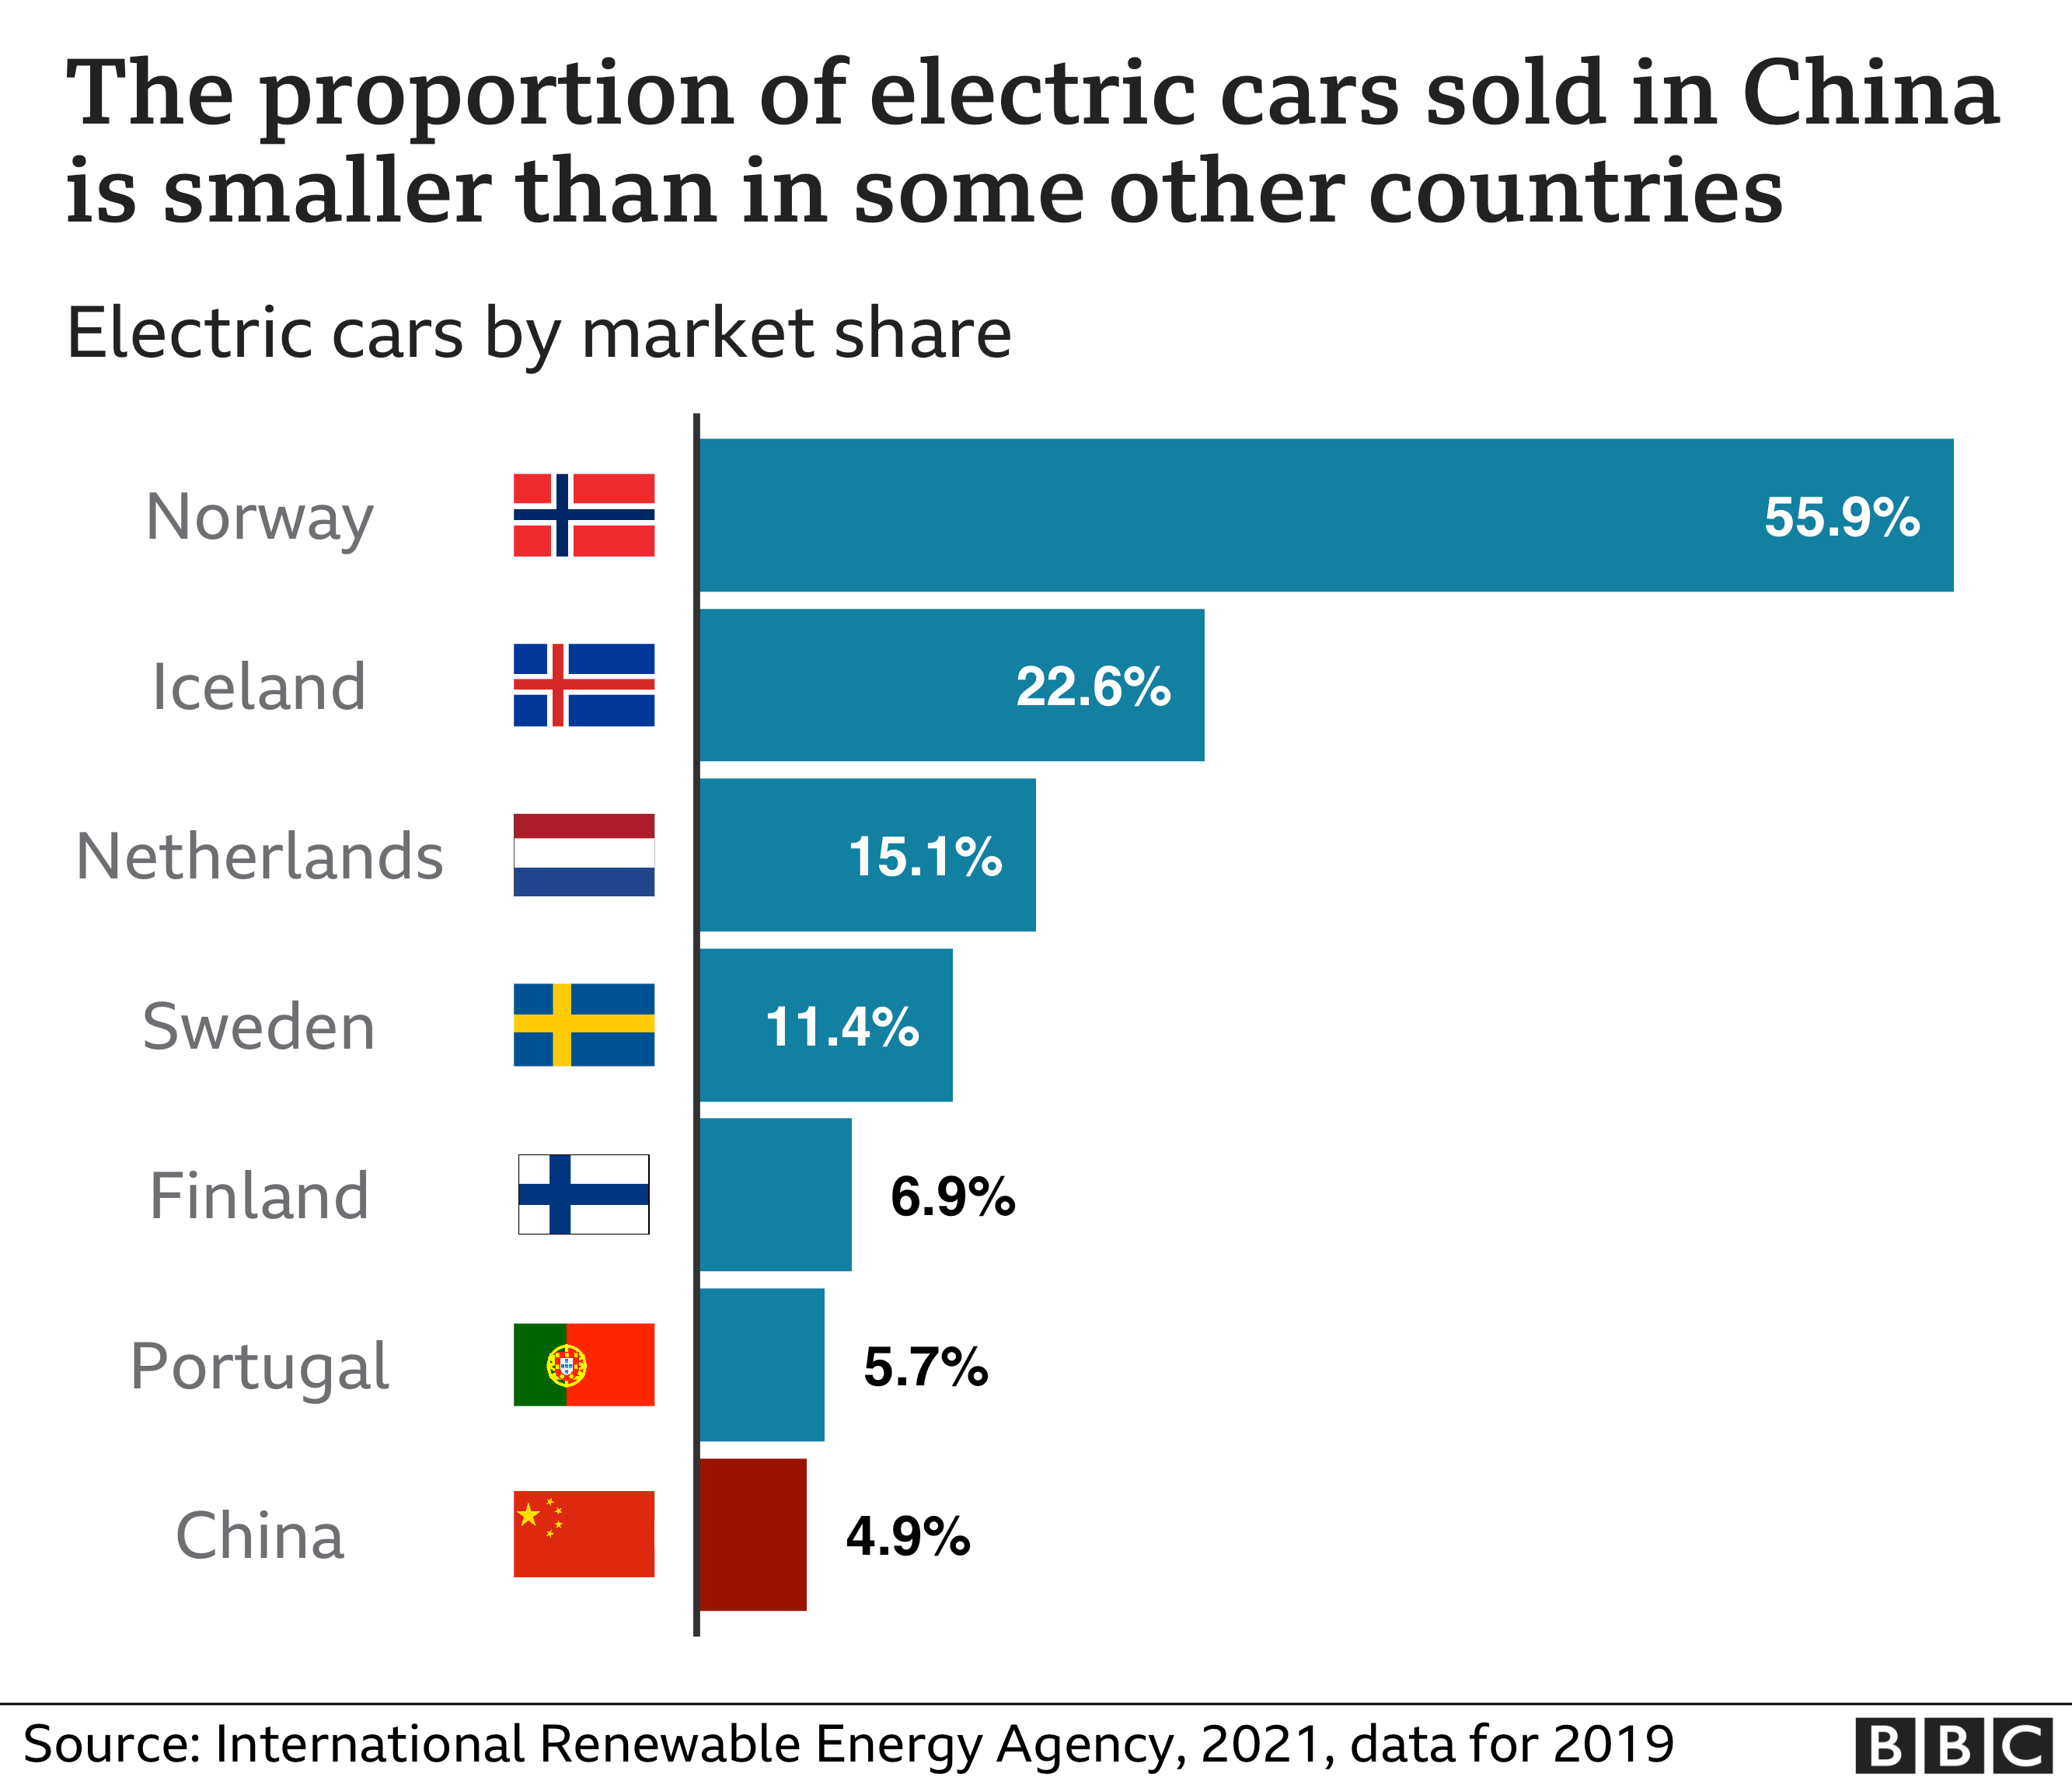 Chart showing electric cars by market share